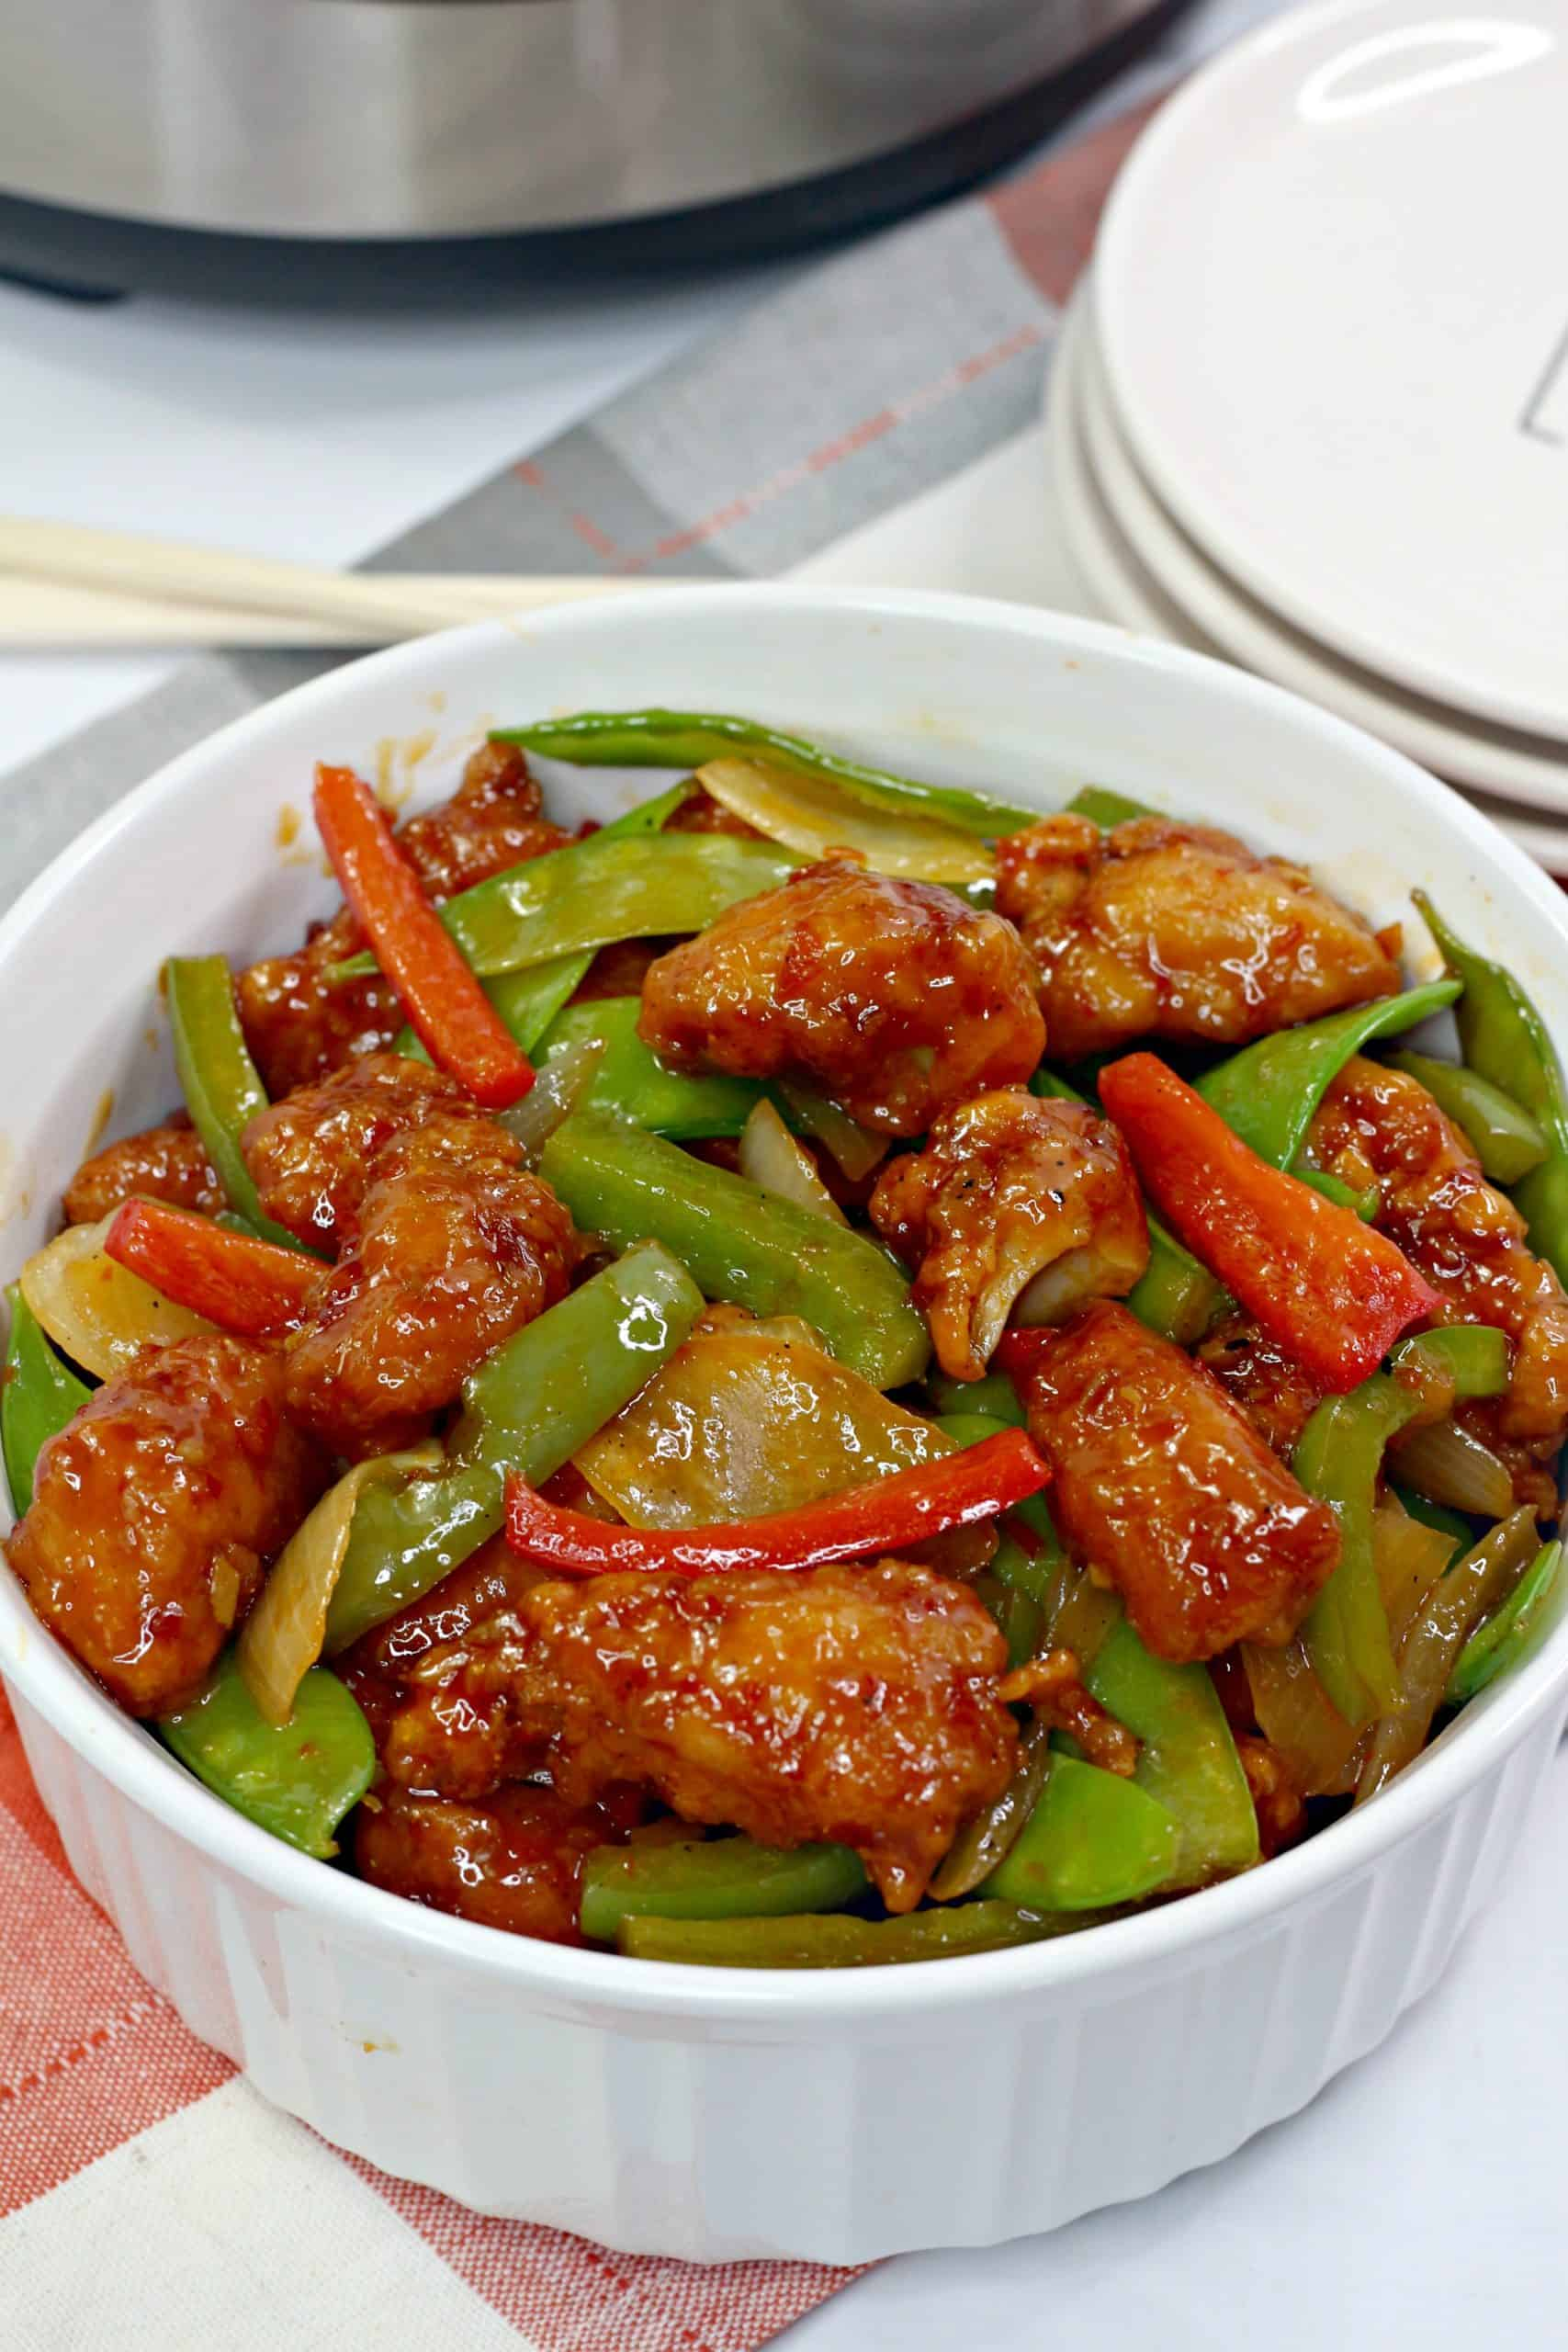 bowl of Chinese food